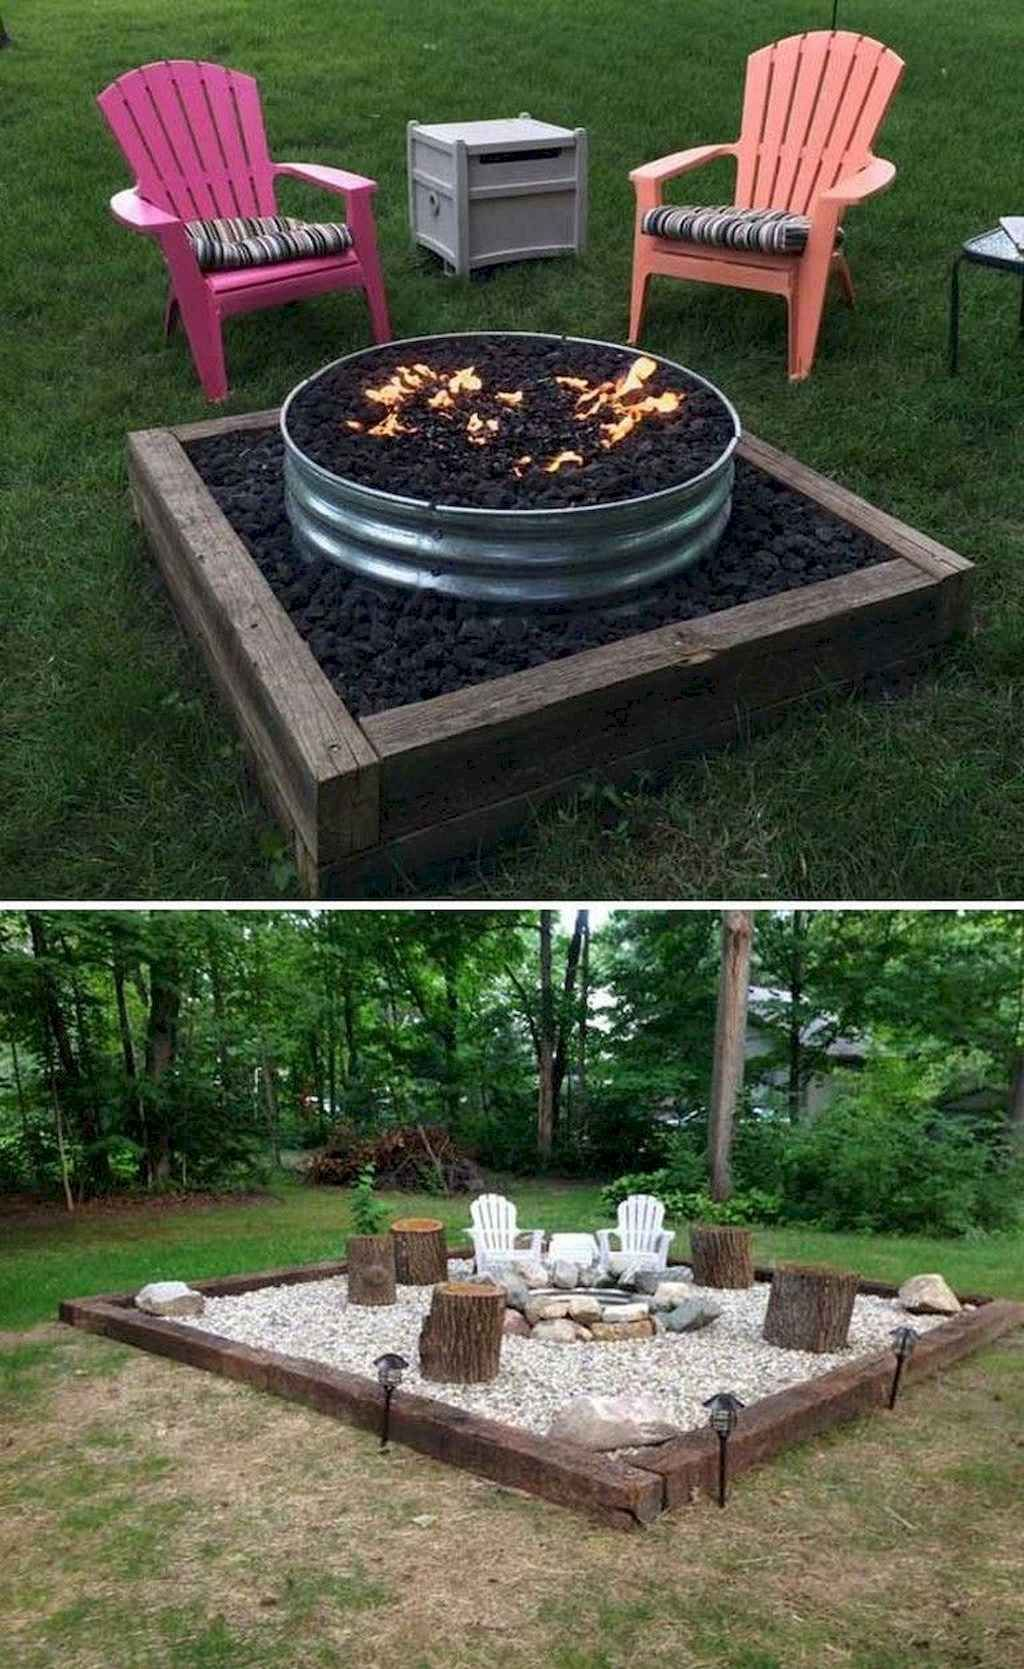 50 cozy backyard seating area ideas gladecor com on backyard fire pit landscaping id=91521